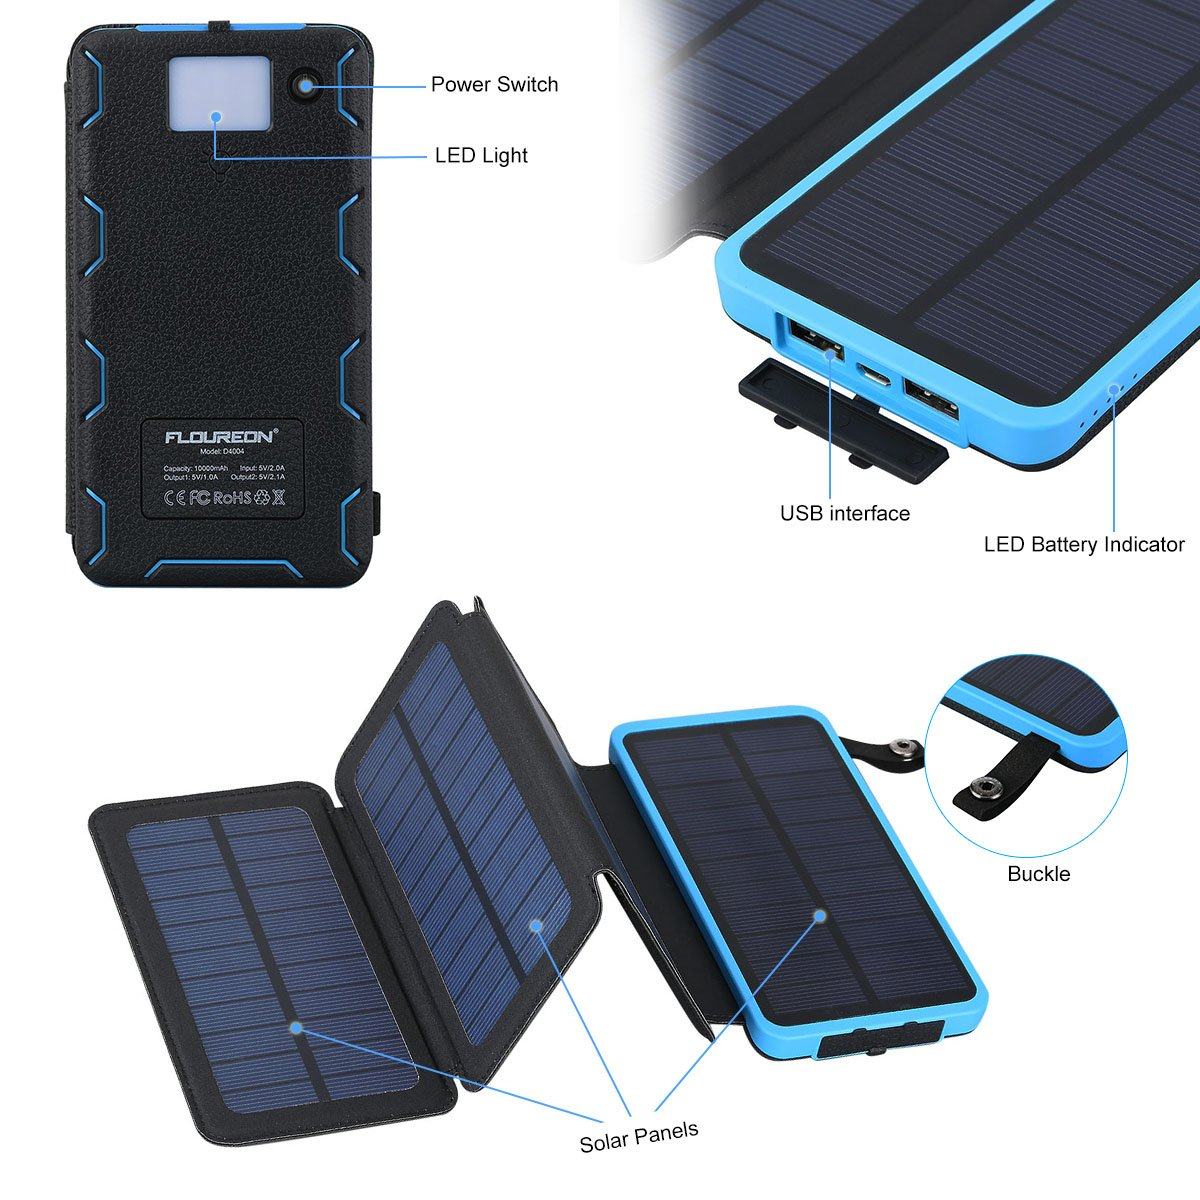 Solar Charger Power Bank 10,000mAh With 1+3PCS Solar Panels - FLOUREON Portable Mobile Phone Solar Charger Power Bank Dual USB 1.0A/2.1A Max IP67 Waterproof LED SOS Flashlight External Battery for iPhone, iPad, Samsung Galaxy and Android Ph